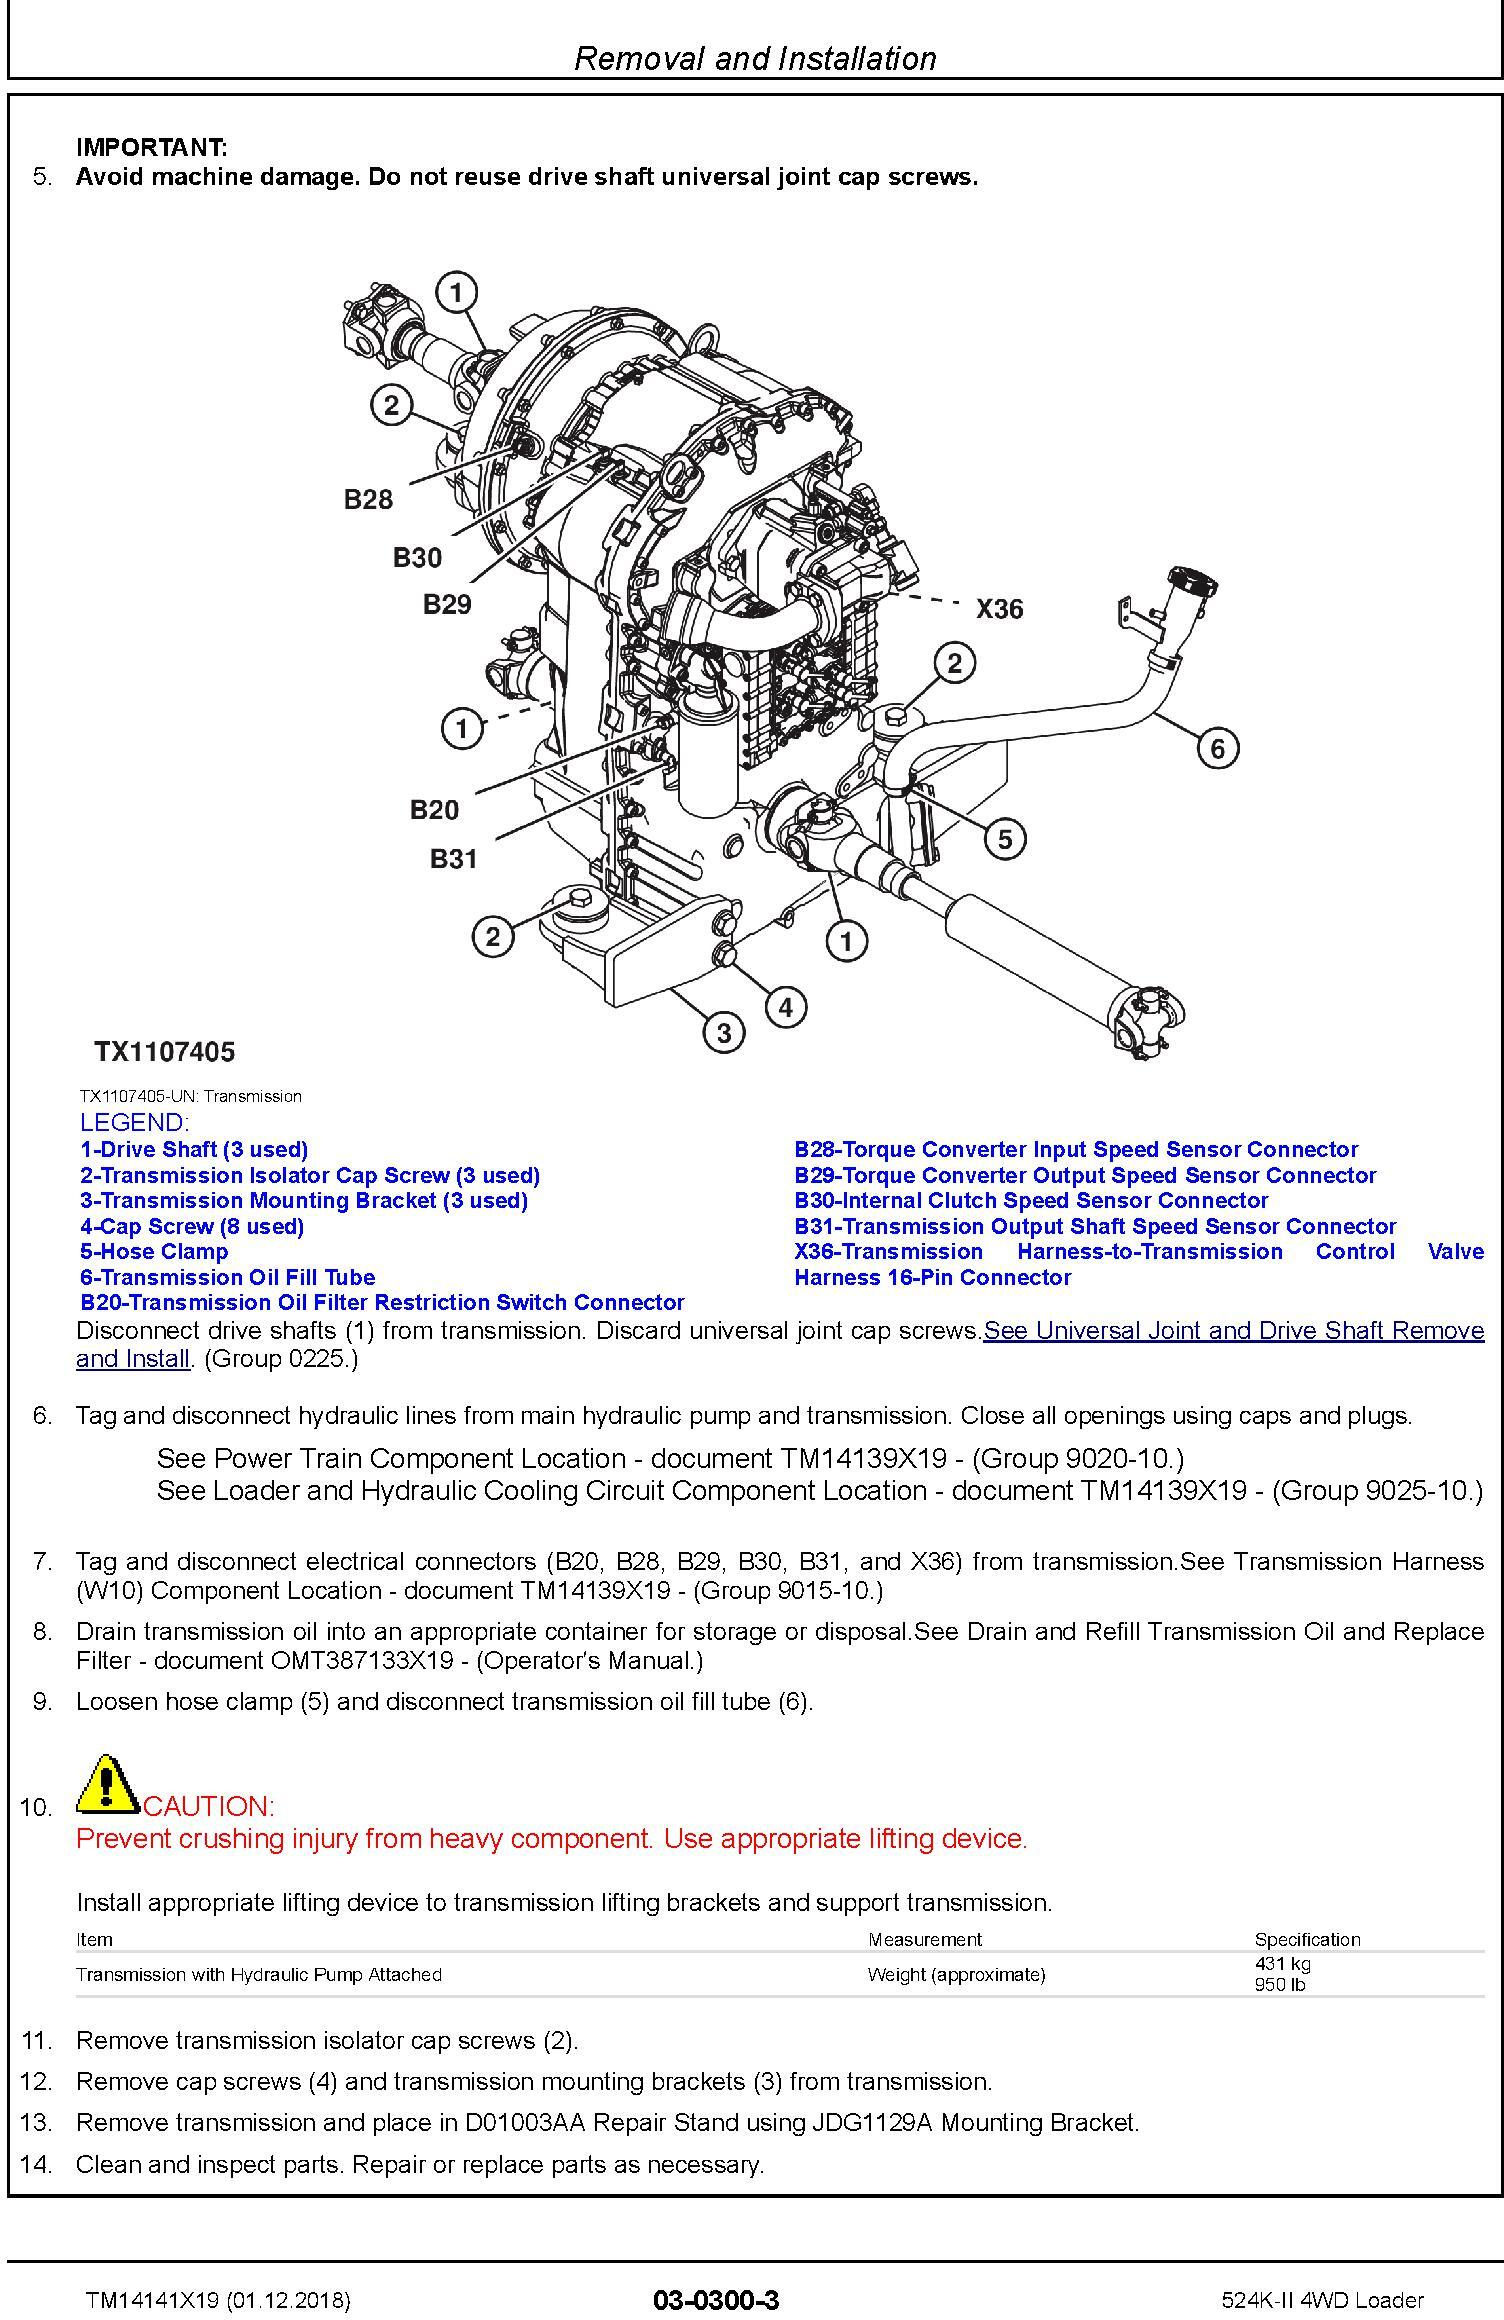 John Deere 524K-II (SN. D677549-) 4WD Loader Repair Technical Service Manual (TM14141X19) - 1